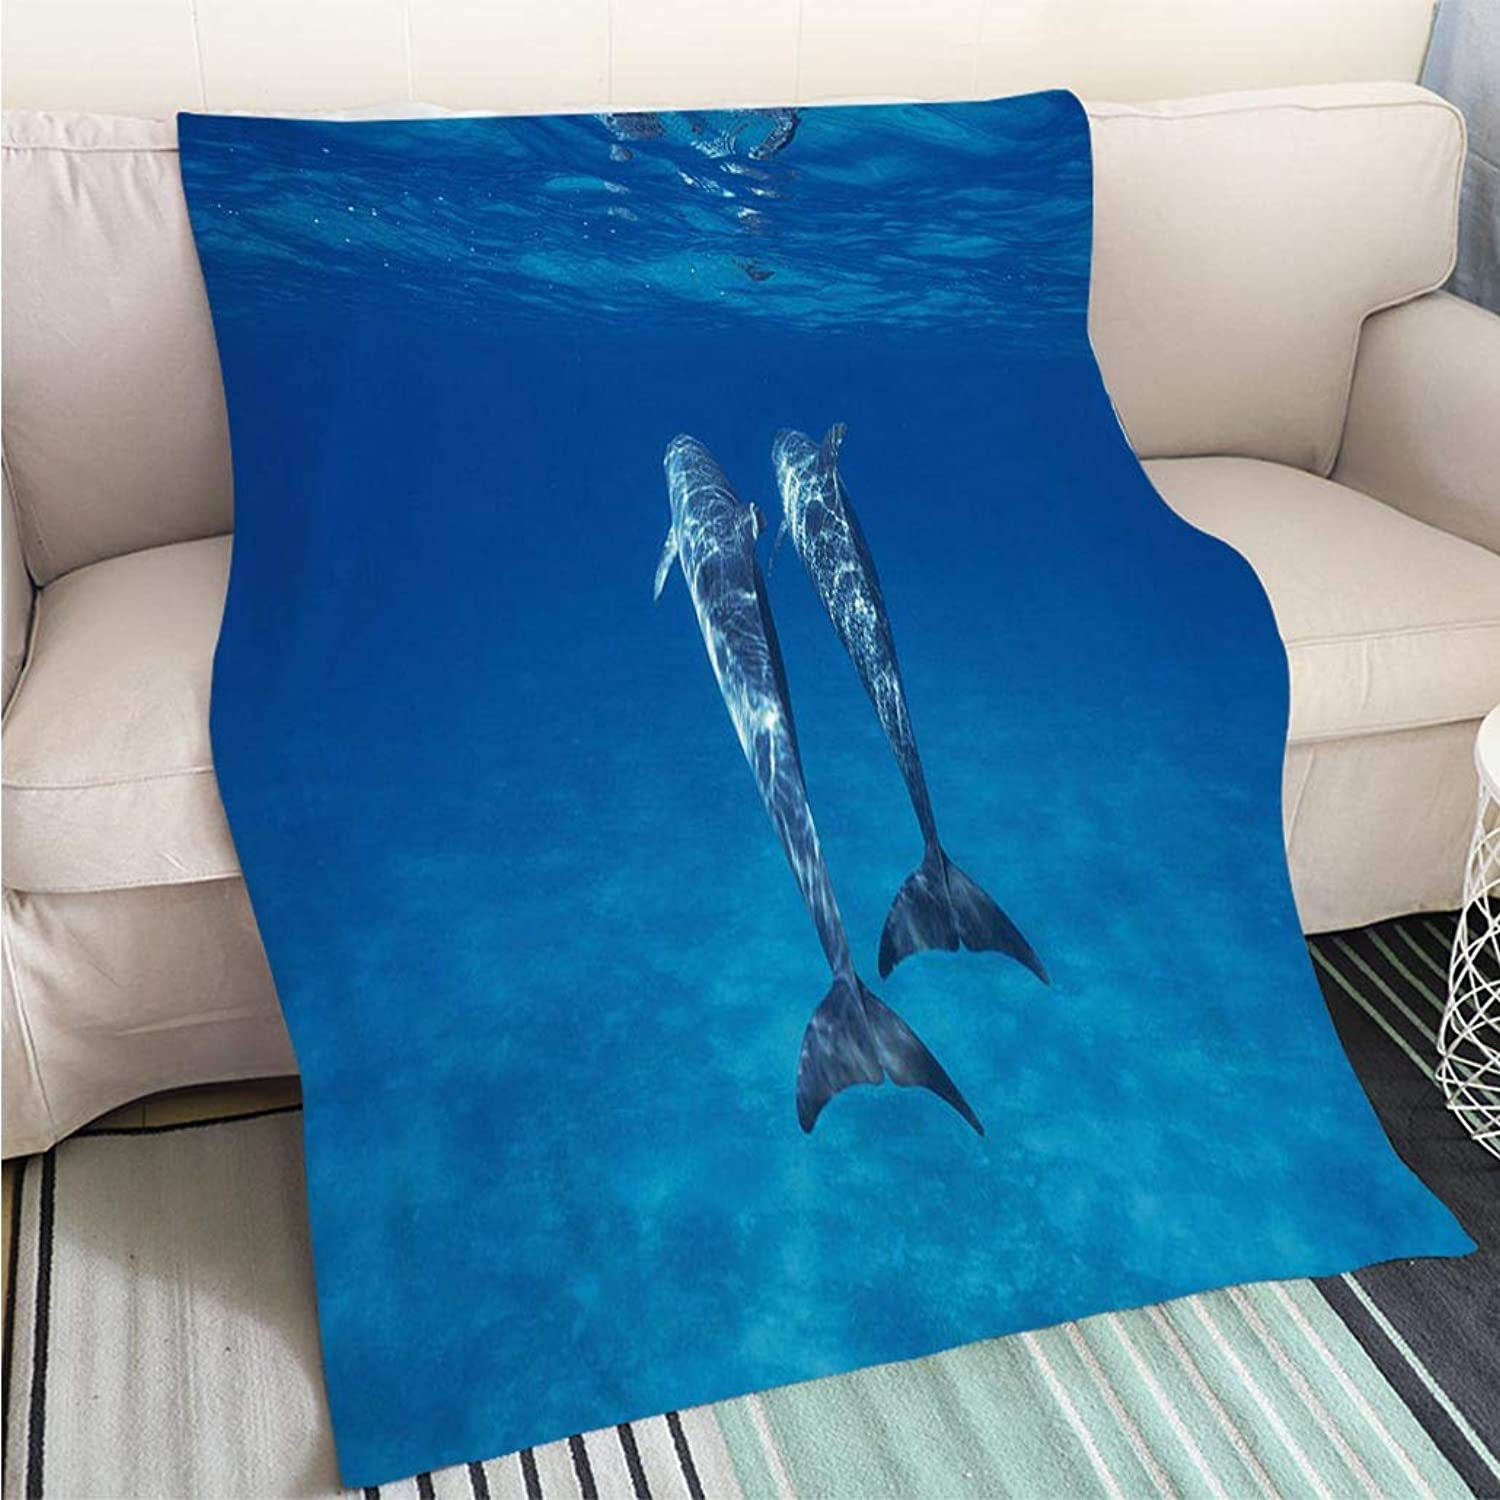 Creative Flannel Printed Blanket for Warm Bedroom Bridled Porpoise Perfect for Couch Sofa or Bed Cool Quilt